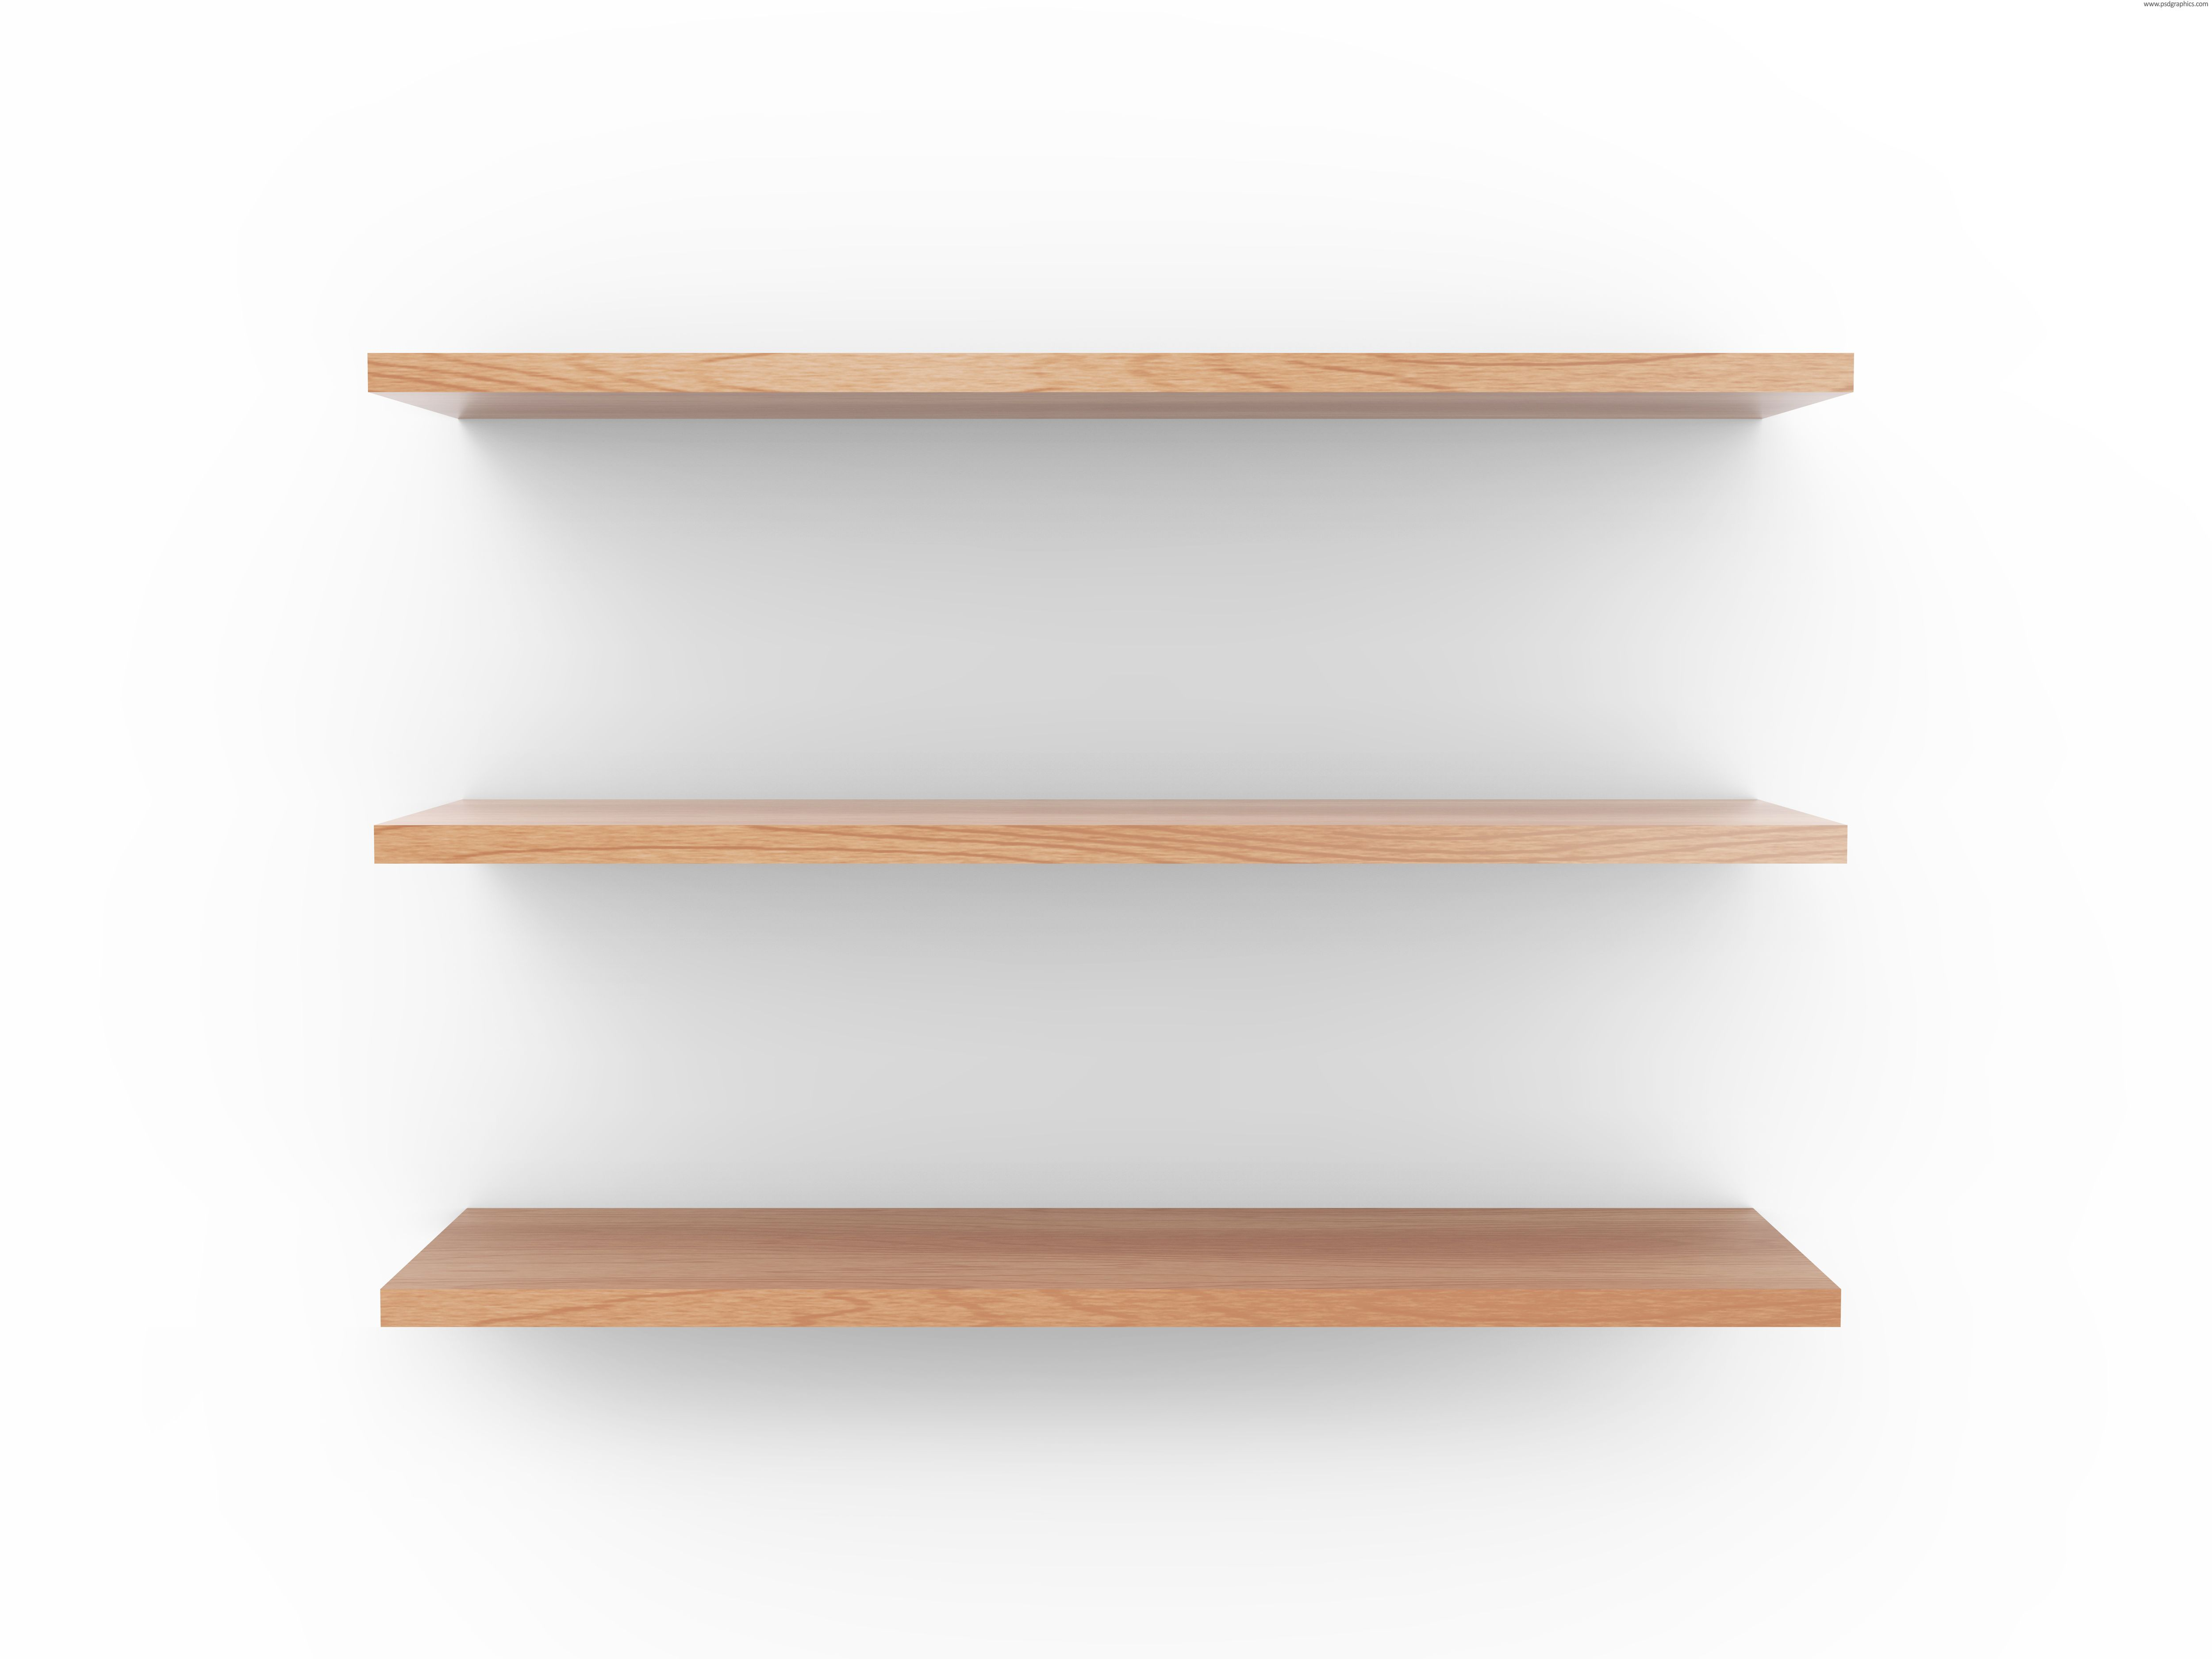 White Wood Wall Shelves Wood Shelf Design Diy Woodworking Projects Store